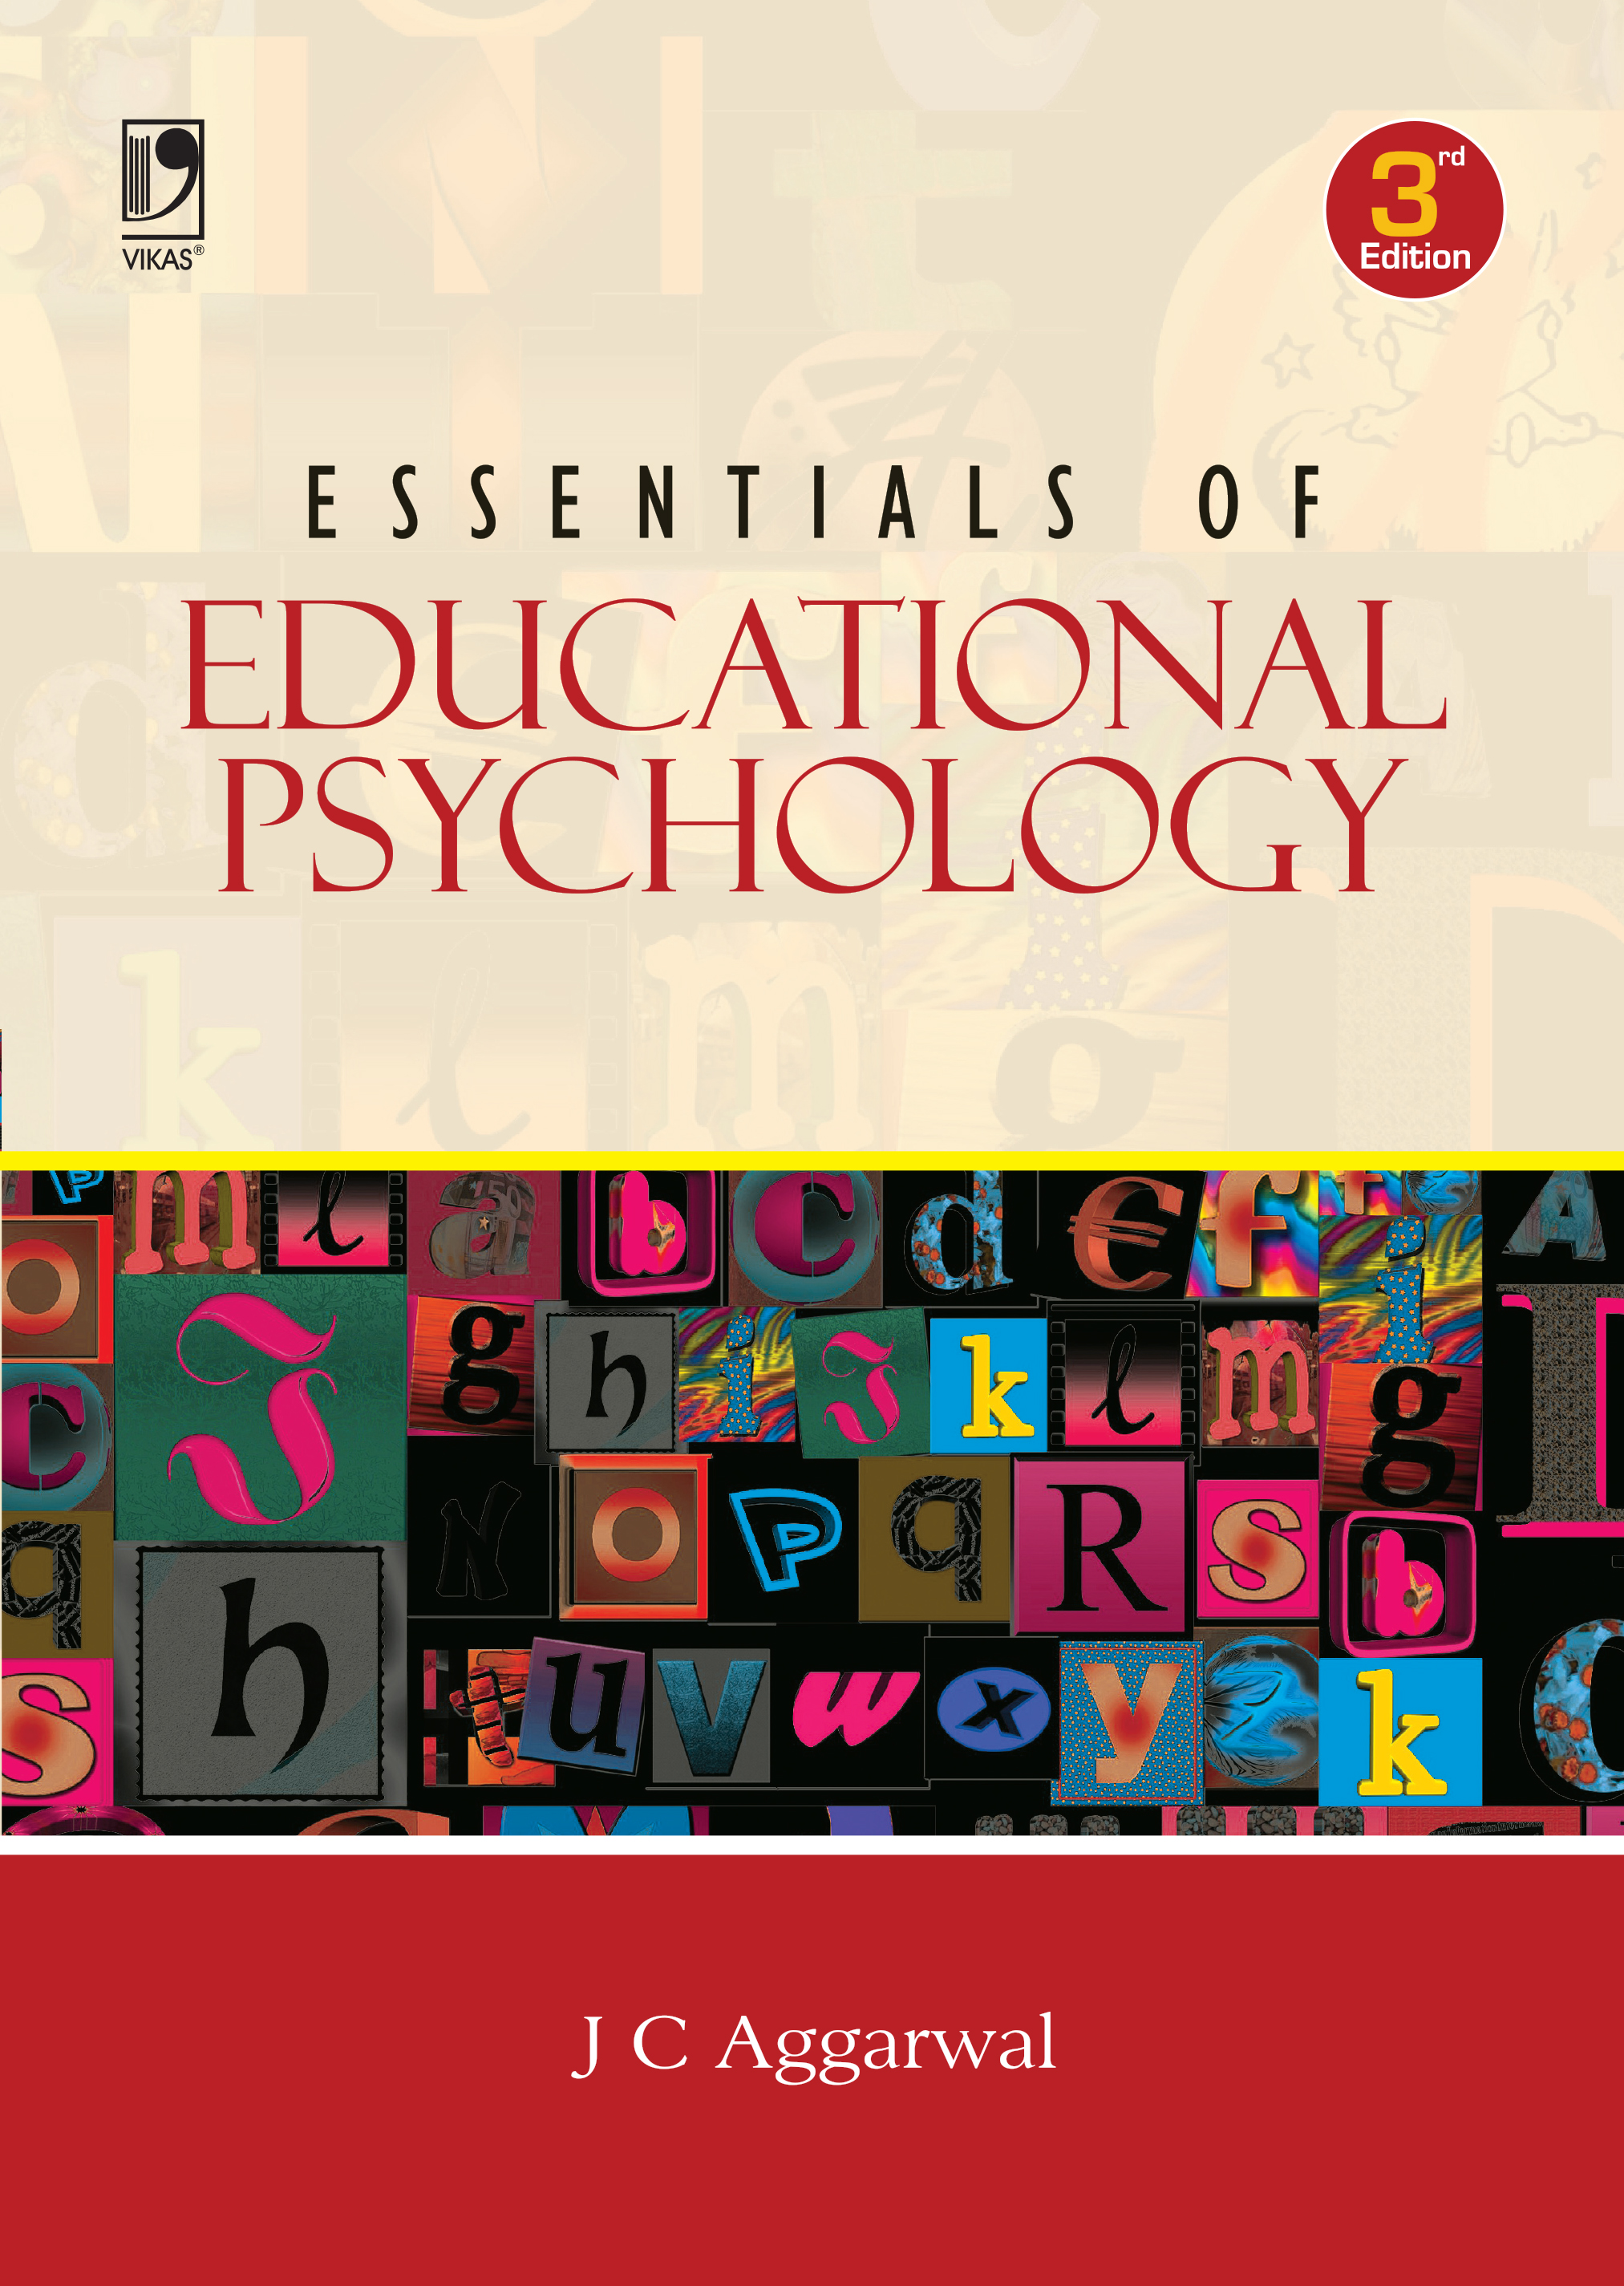 ESSENTIALS OF EDUCATIONAL PSYCHOLOGY, 3/e